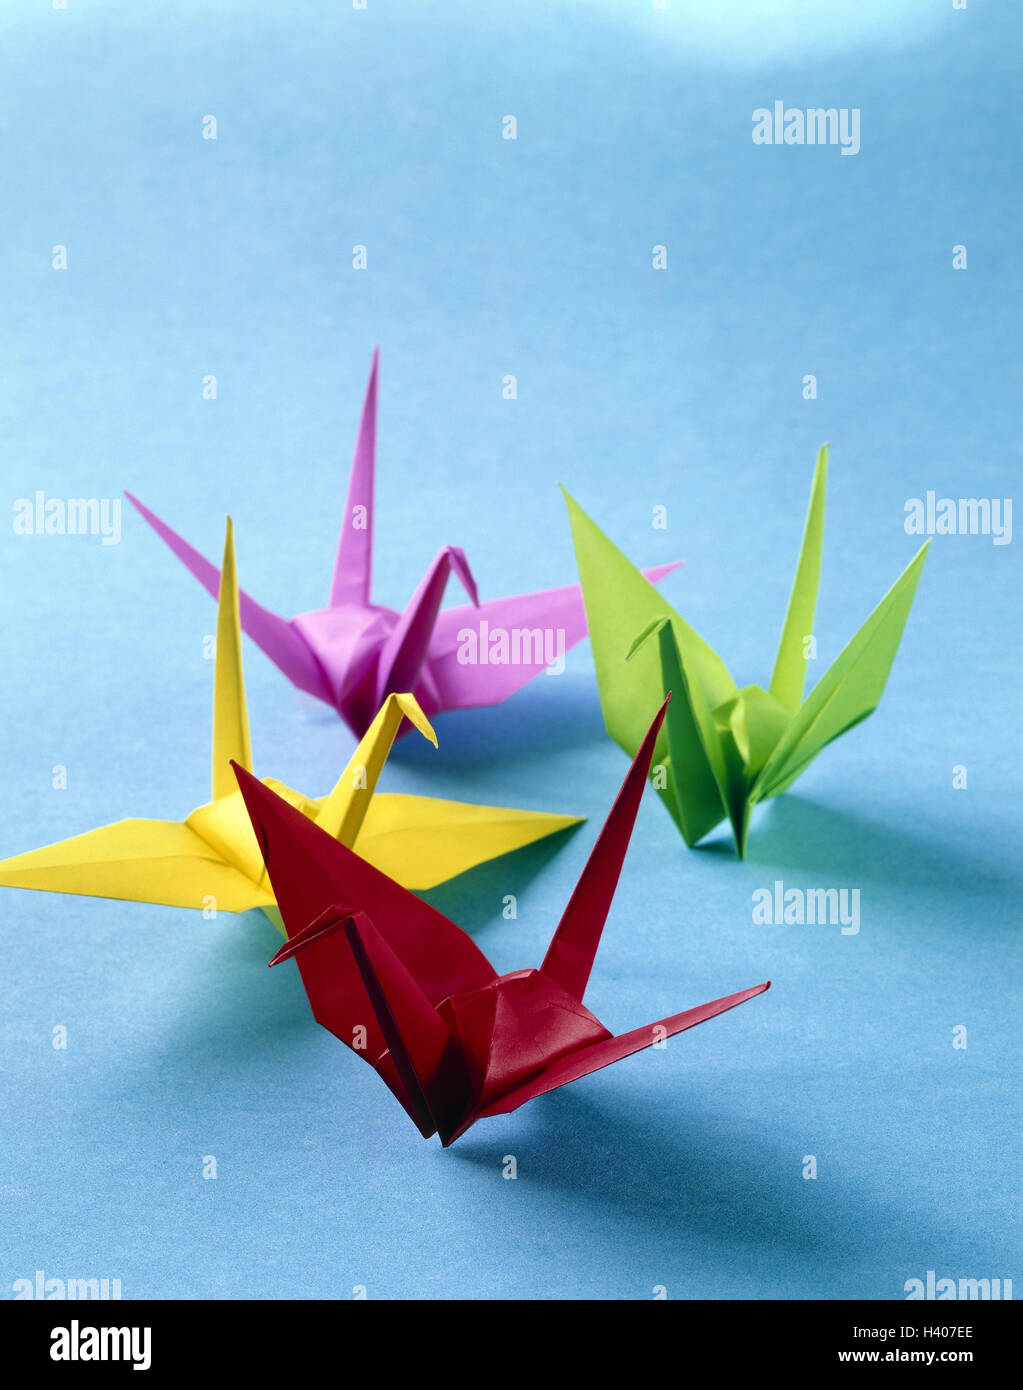 Origami Japanese Paper Folding Art Animals Birds Brightly Japan Characters Mythical Figures Four Colourfully Fold Skill